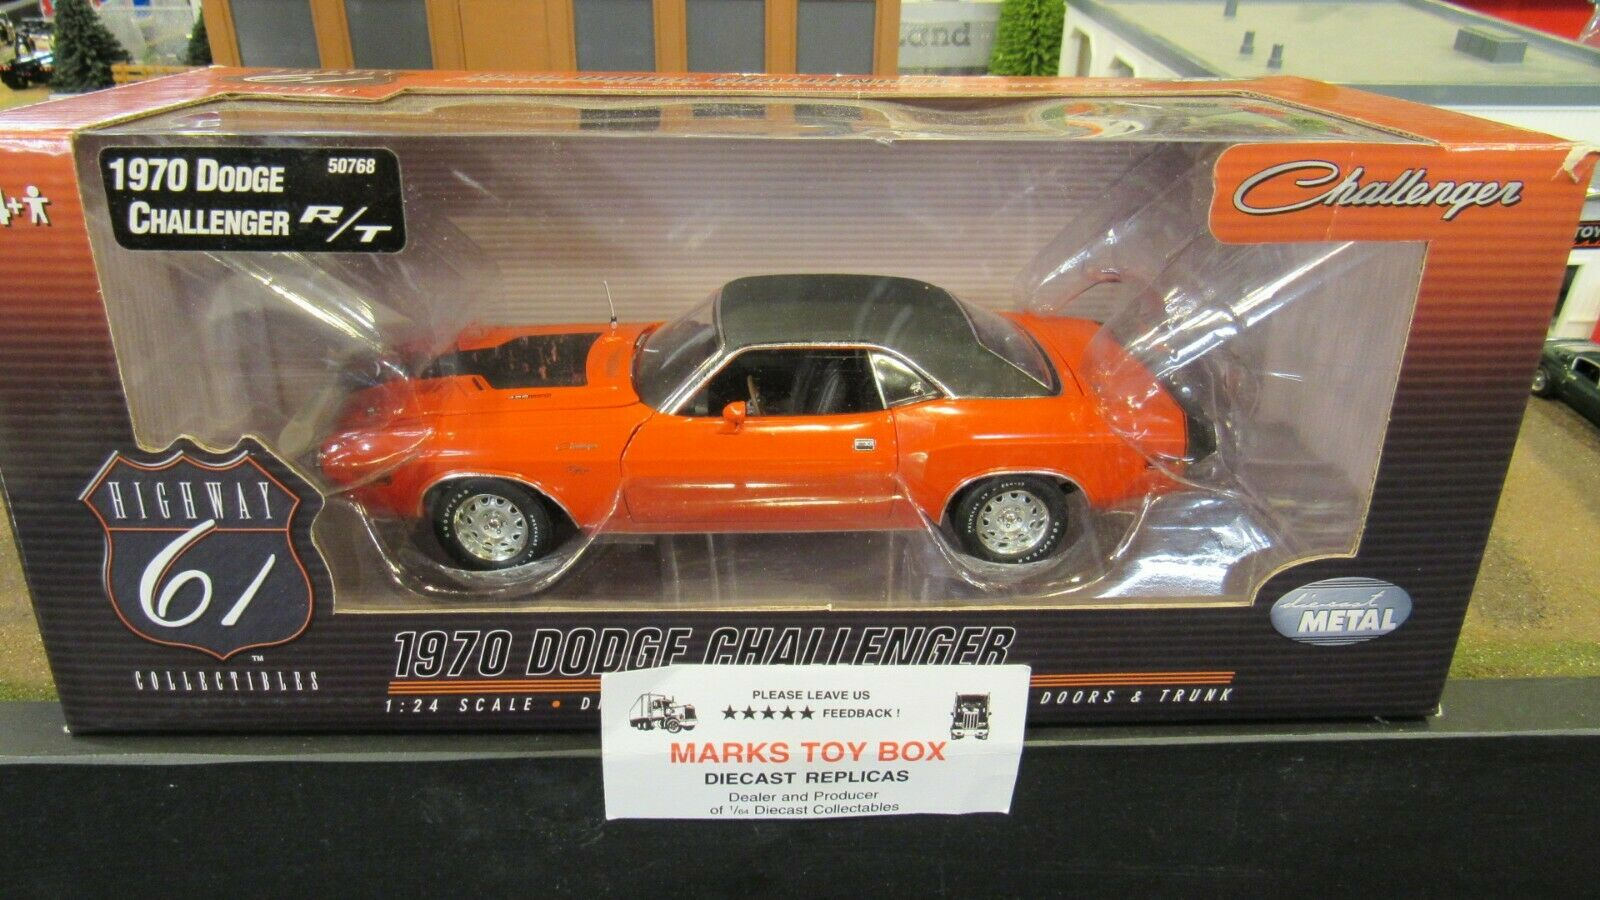 DCP HWY 61  50768  Orange 70 1970 DODGE CHALLENGER 426 HEMI RT R T 1 24 CL  nouveau style